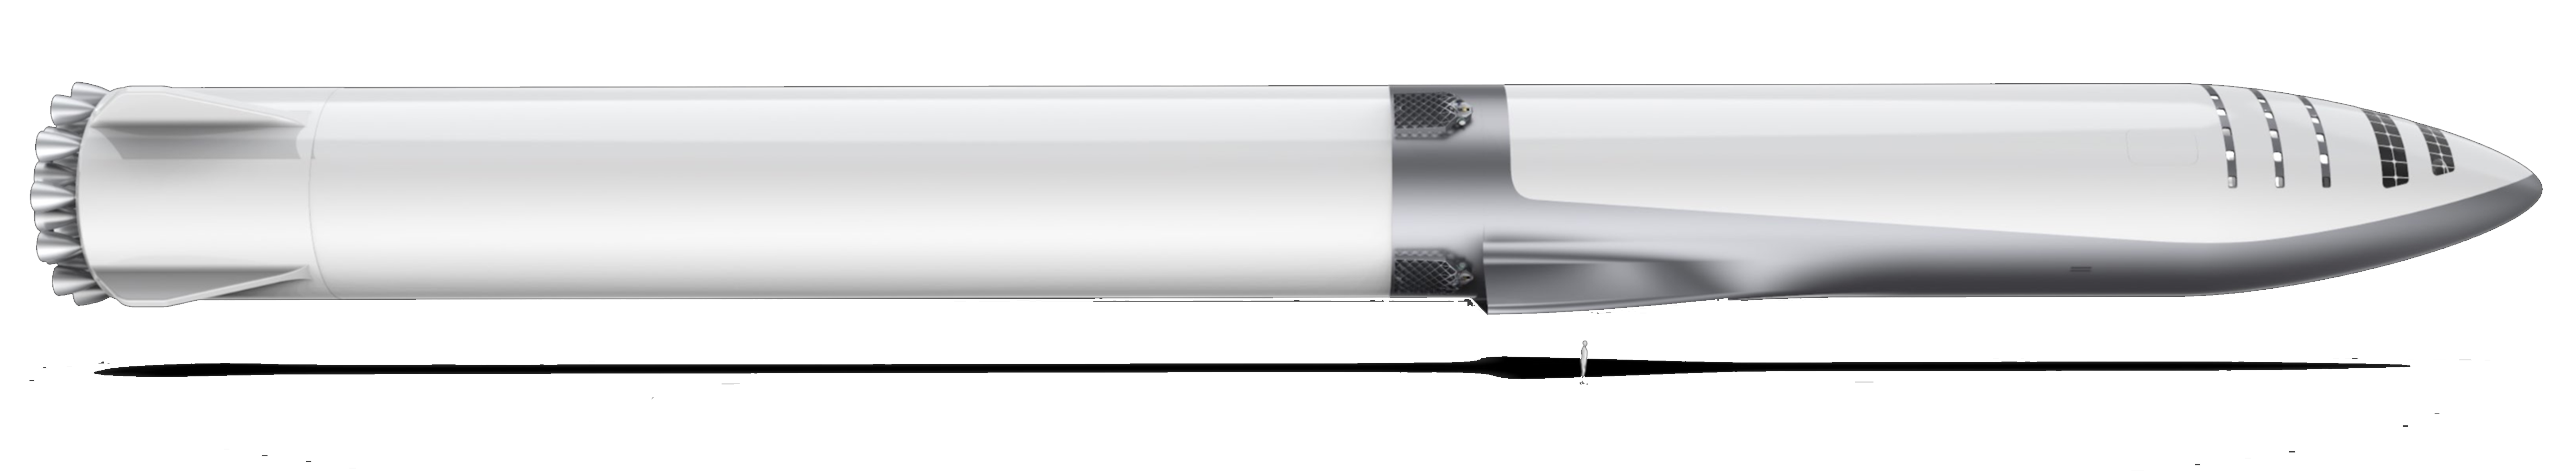 BFR transparent (SpaceX)